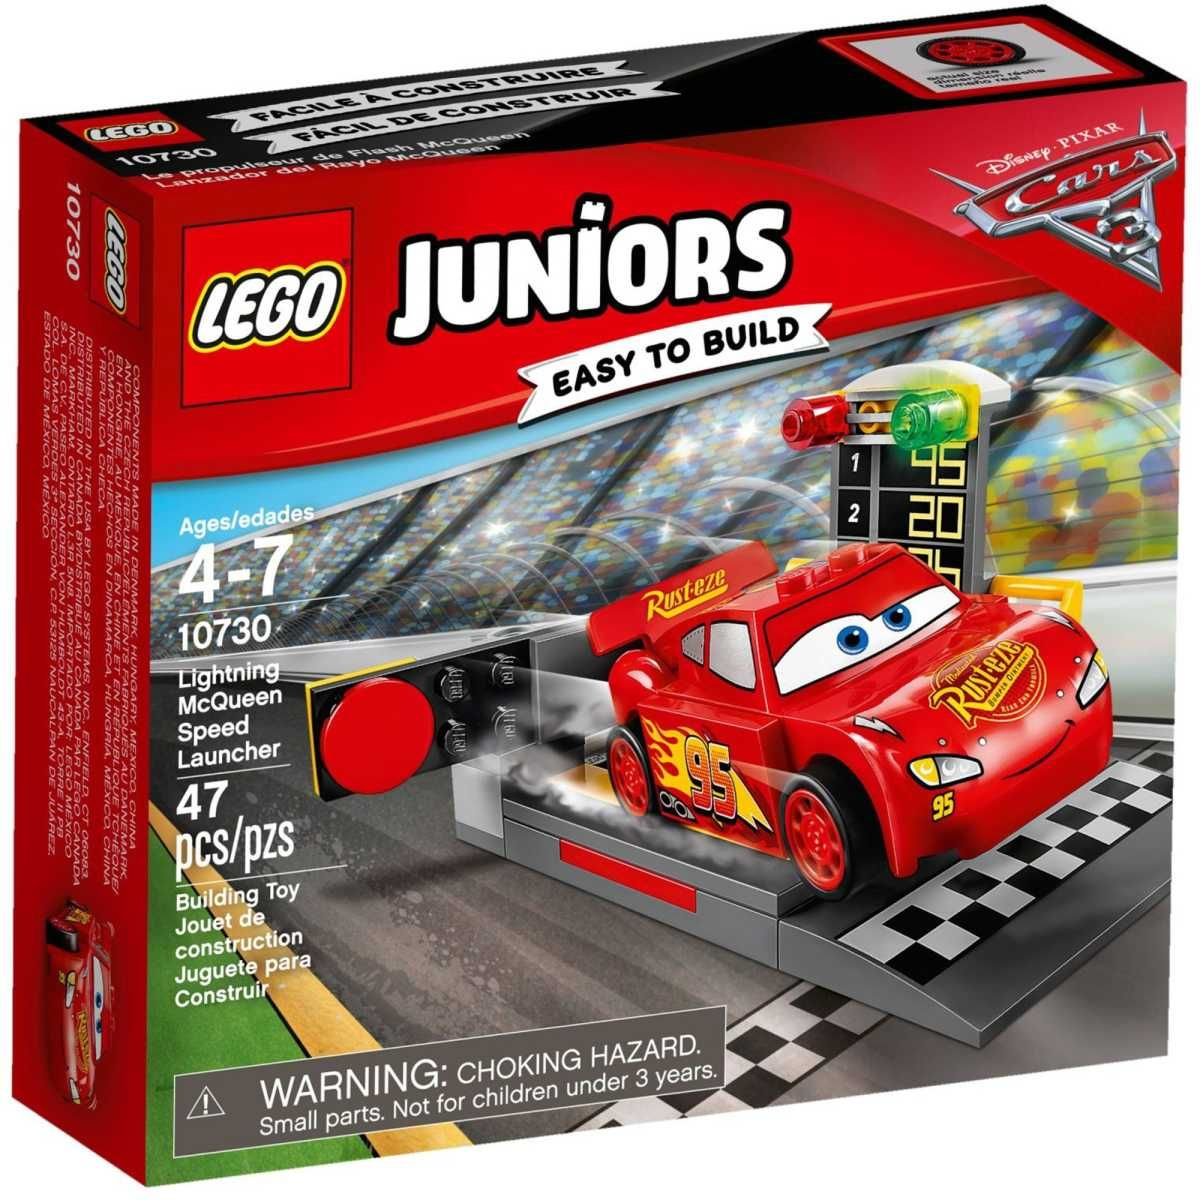 Cars 3 Jackson Storm Jouet Lego Juniors Cars 3 Lightning Mcqueen Speed Launcher 10730